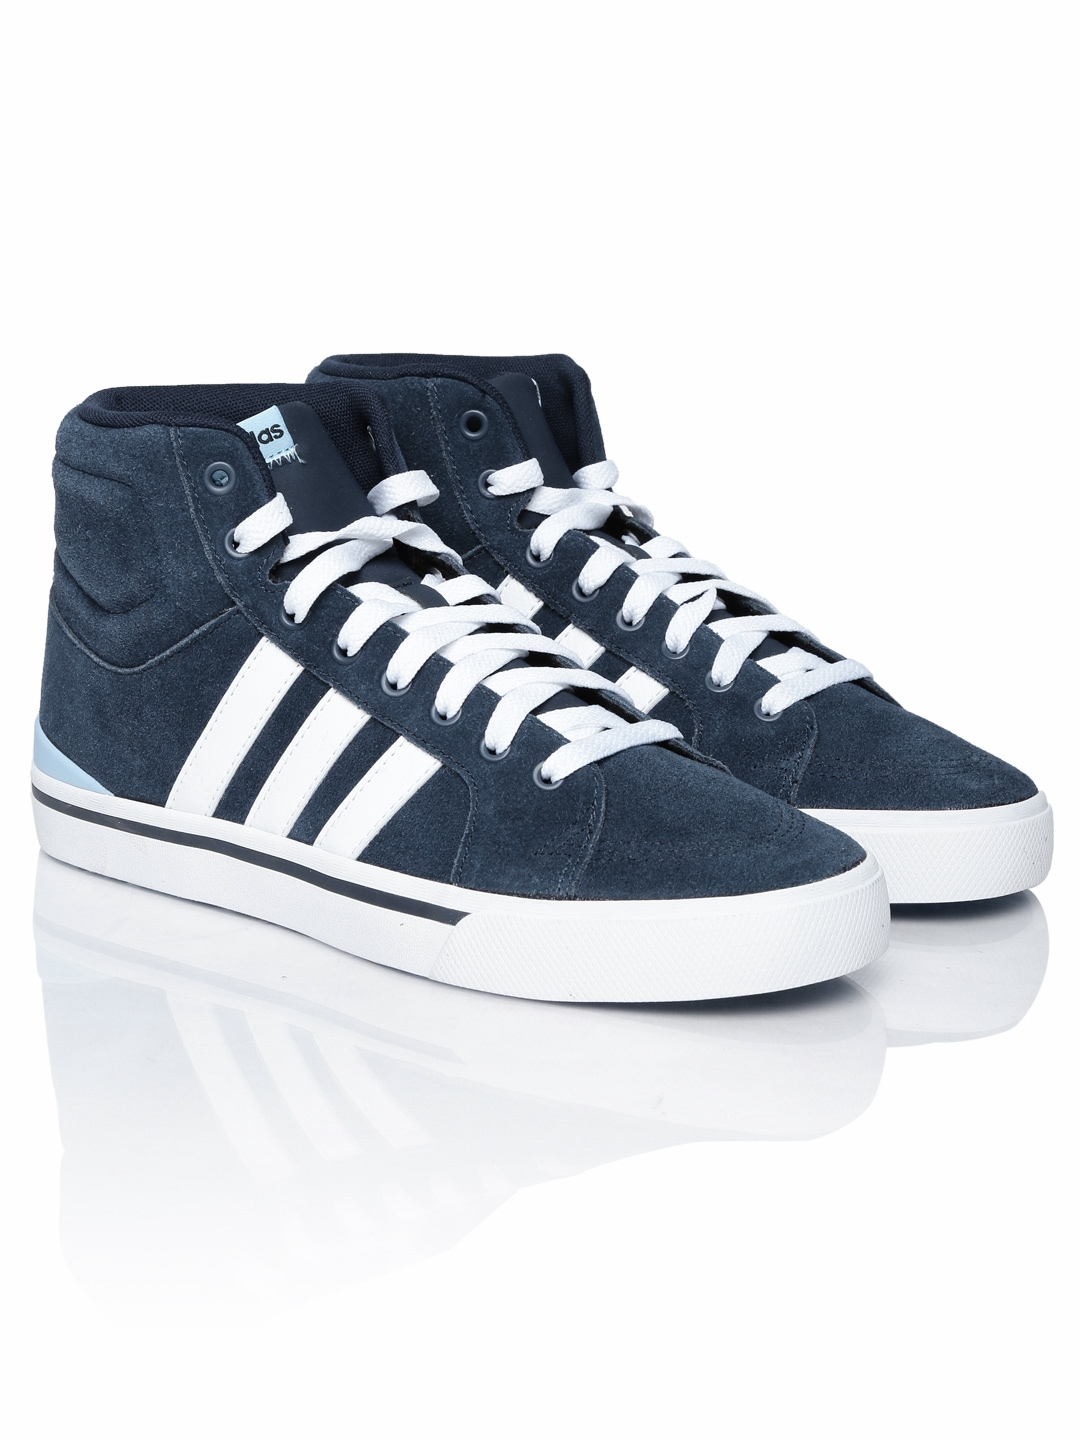 Adidas Neo Daily Casuals